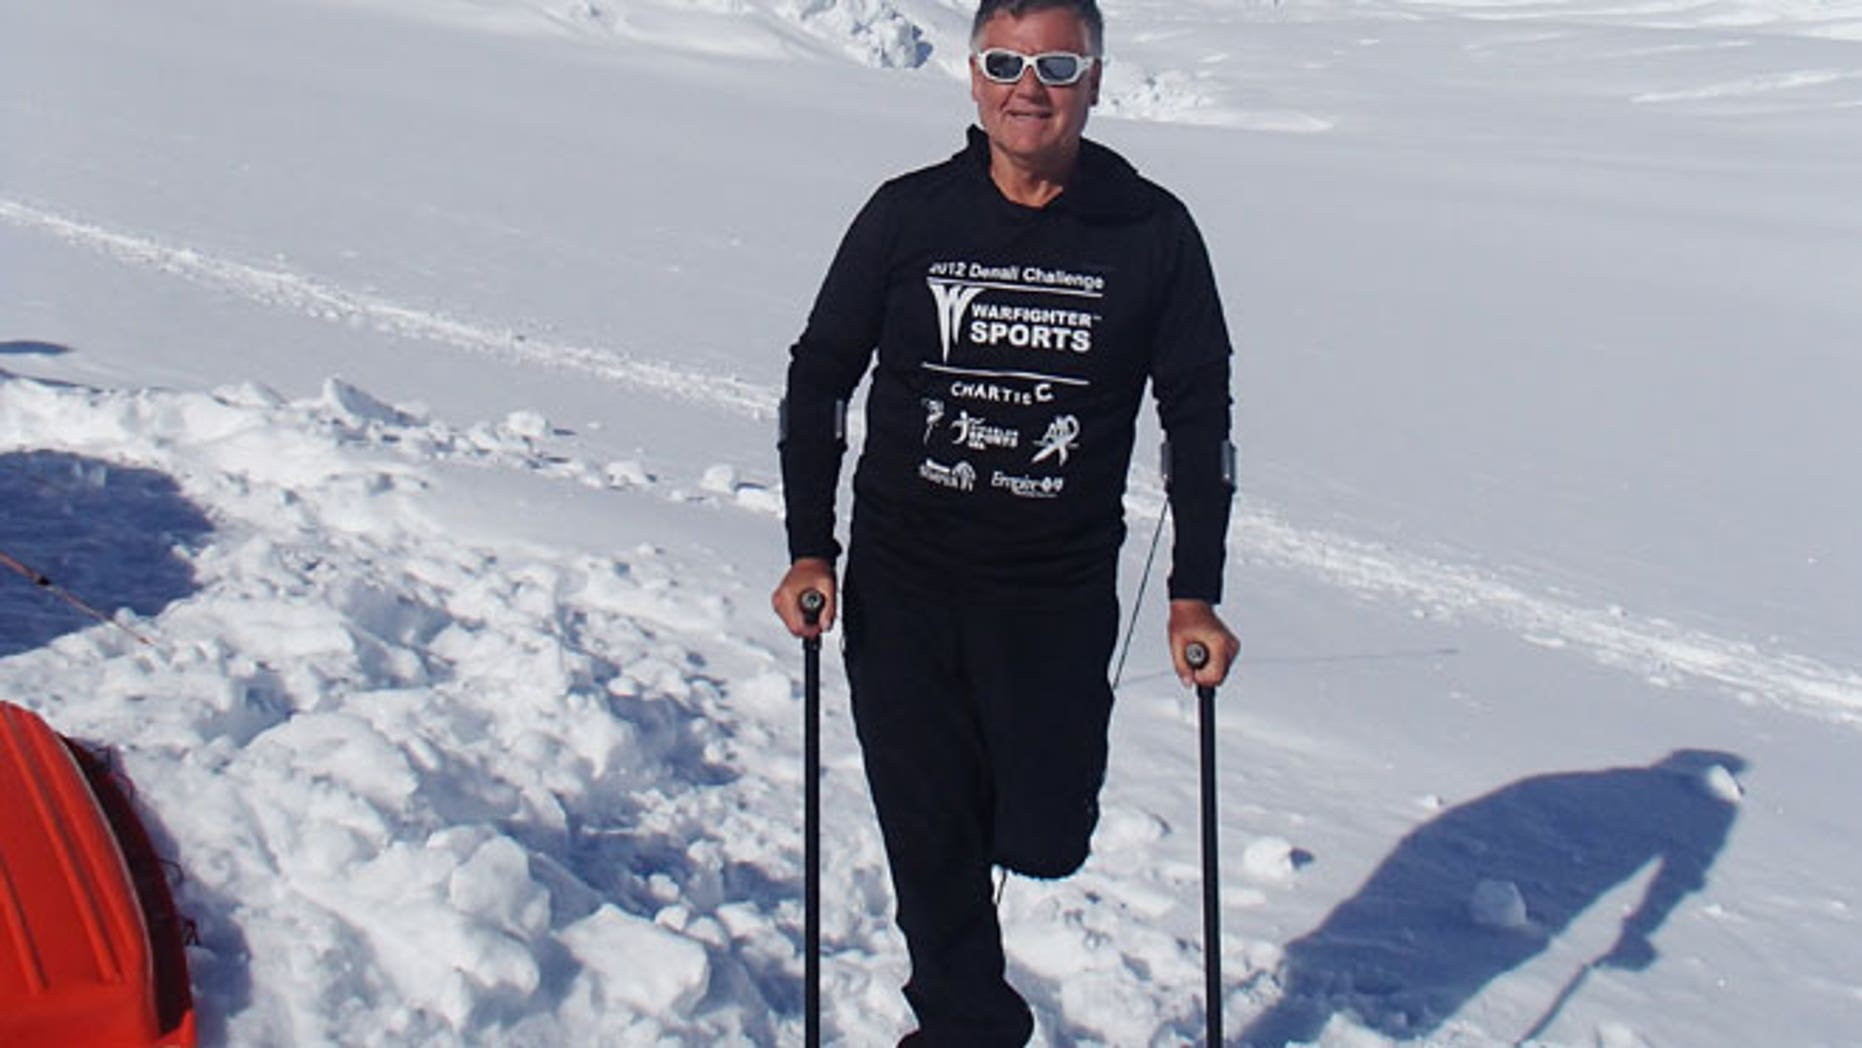 In this June 13, 2012 photo released by Disabled Sports USA, shows Kirk Bauer, 64, a climber and executive director of Disabled Sports USA, poses in front of Mount McKinley, Alaska.